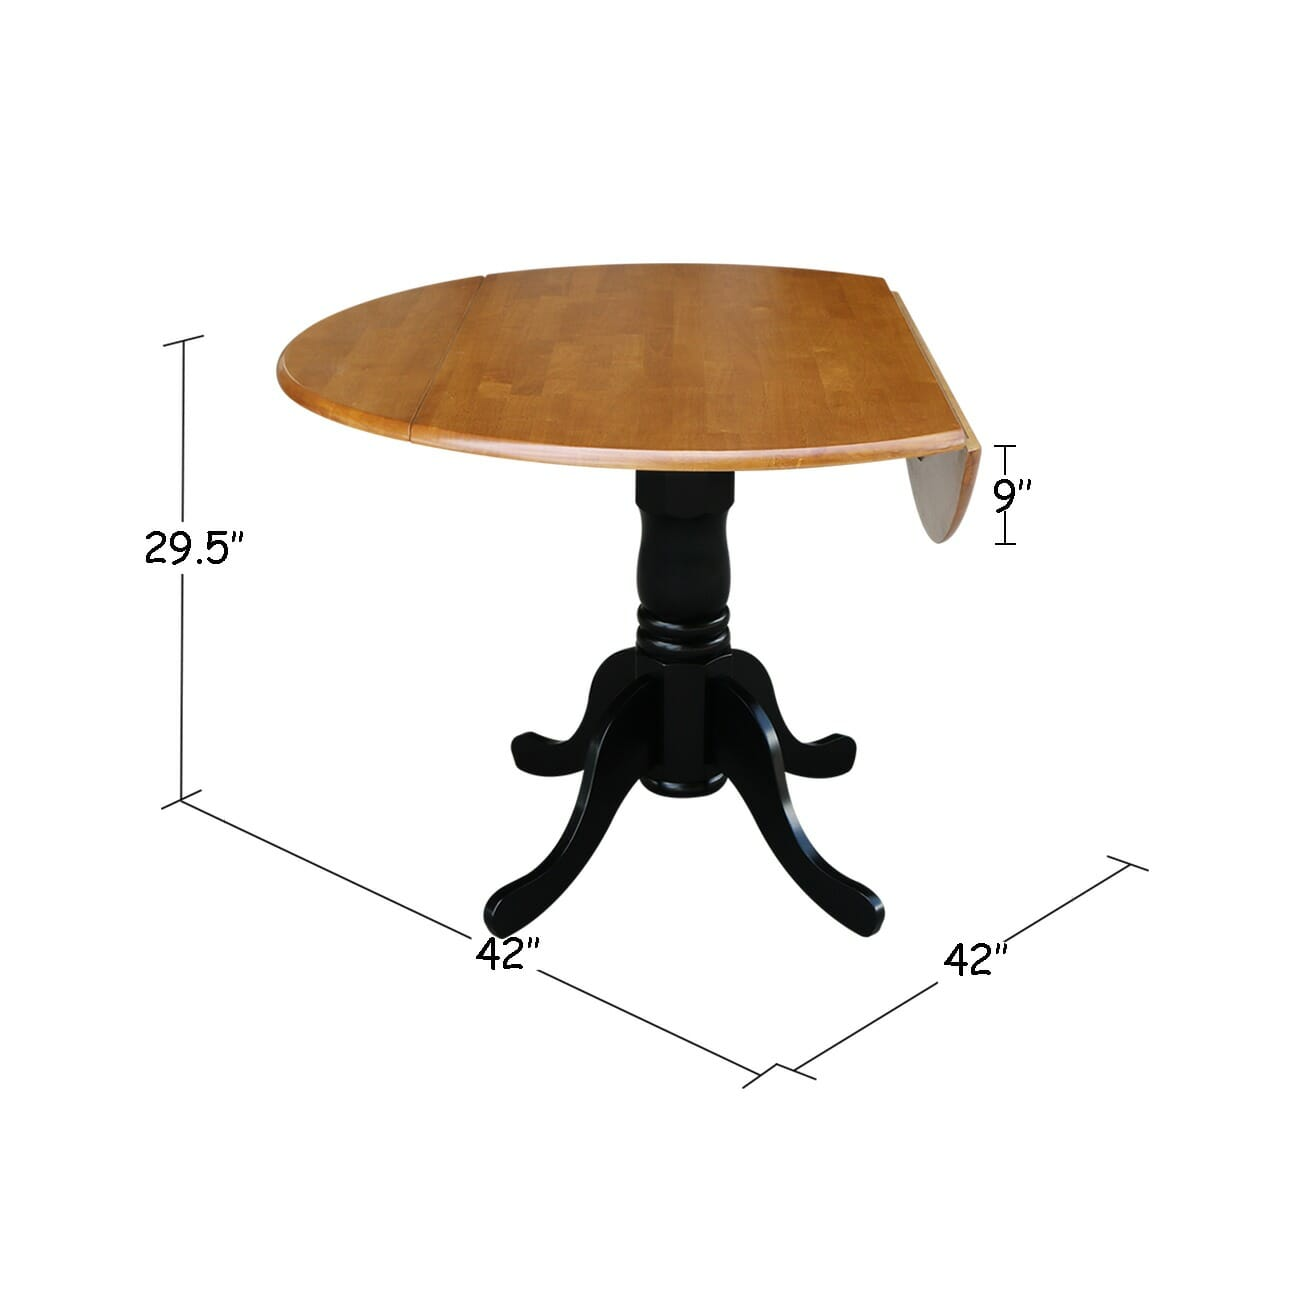 T 42dp 42 Quot Round Drop Leaf Table Unfinished Furniture Of